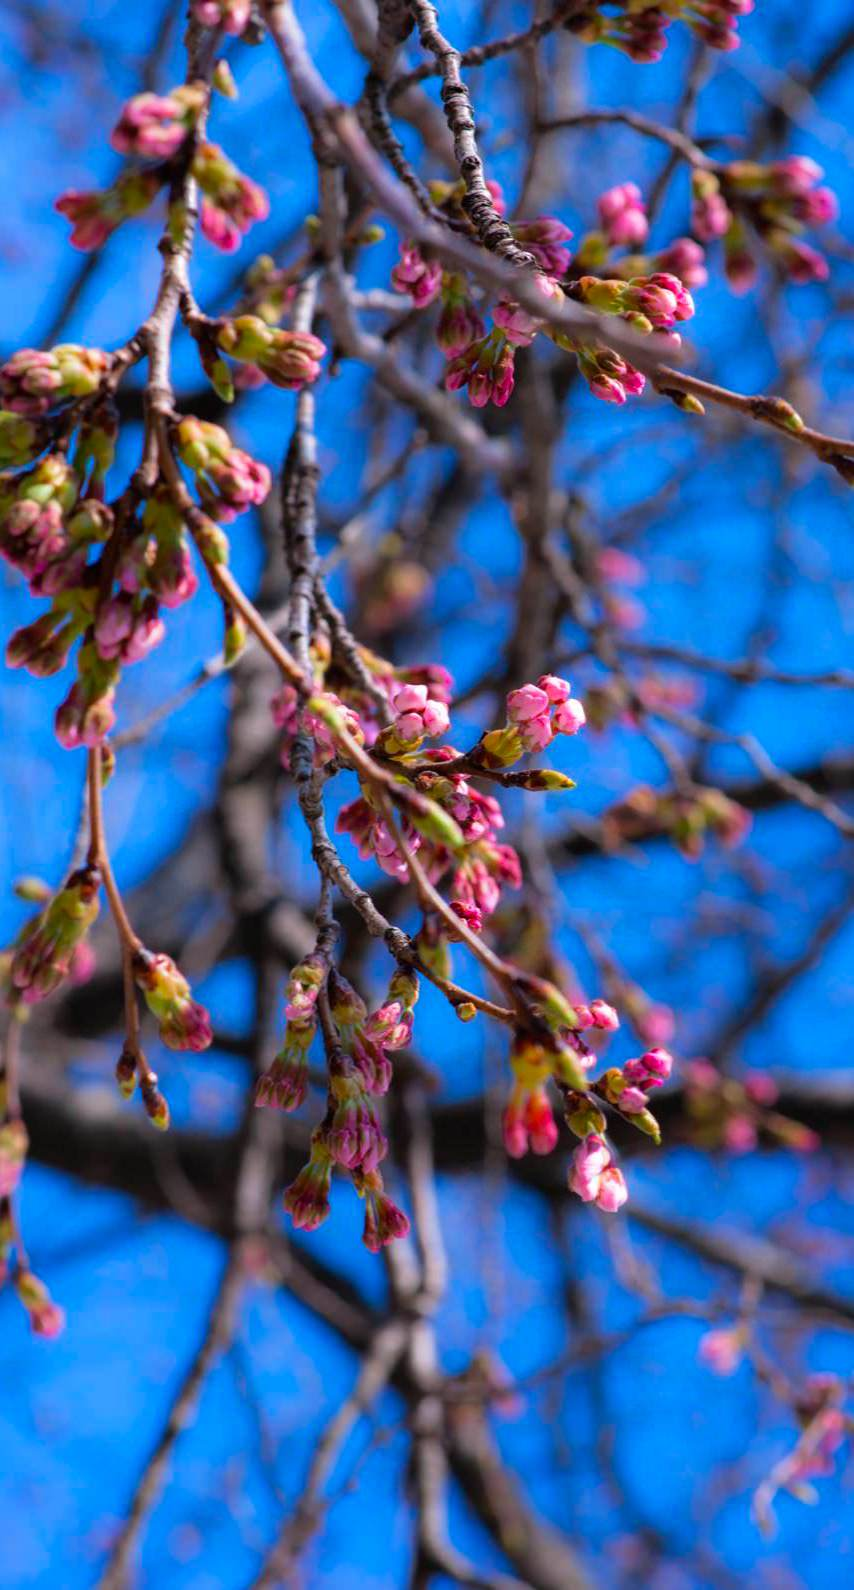 Landscape Flowers And Trees Blue Pink Wallpaper Sc Iphone6s